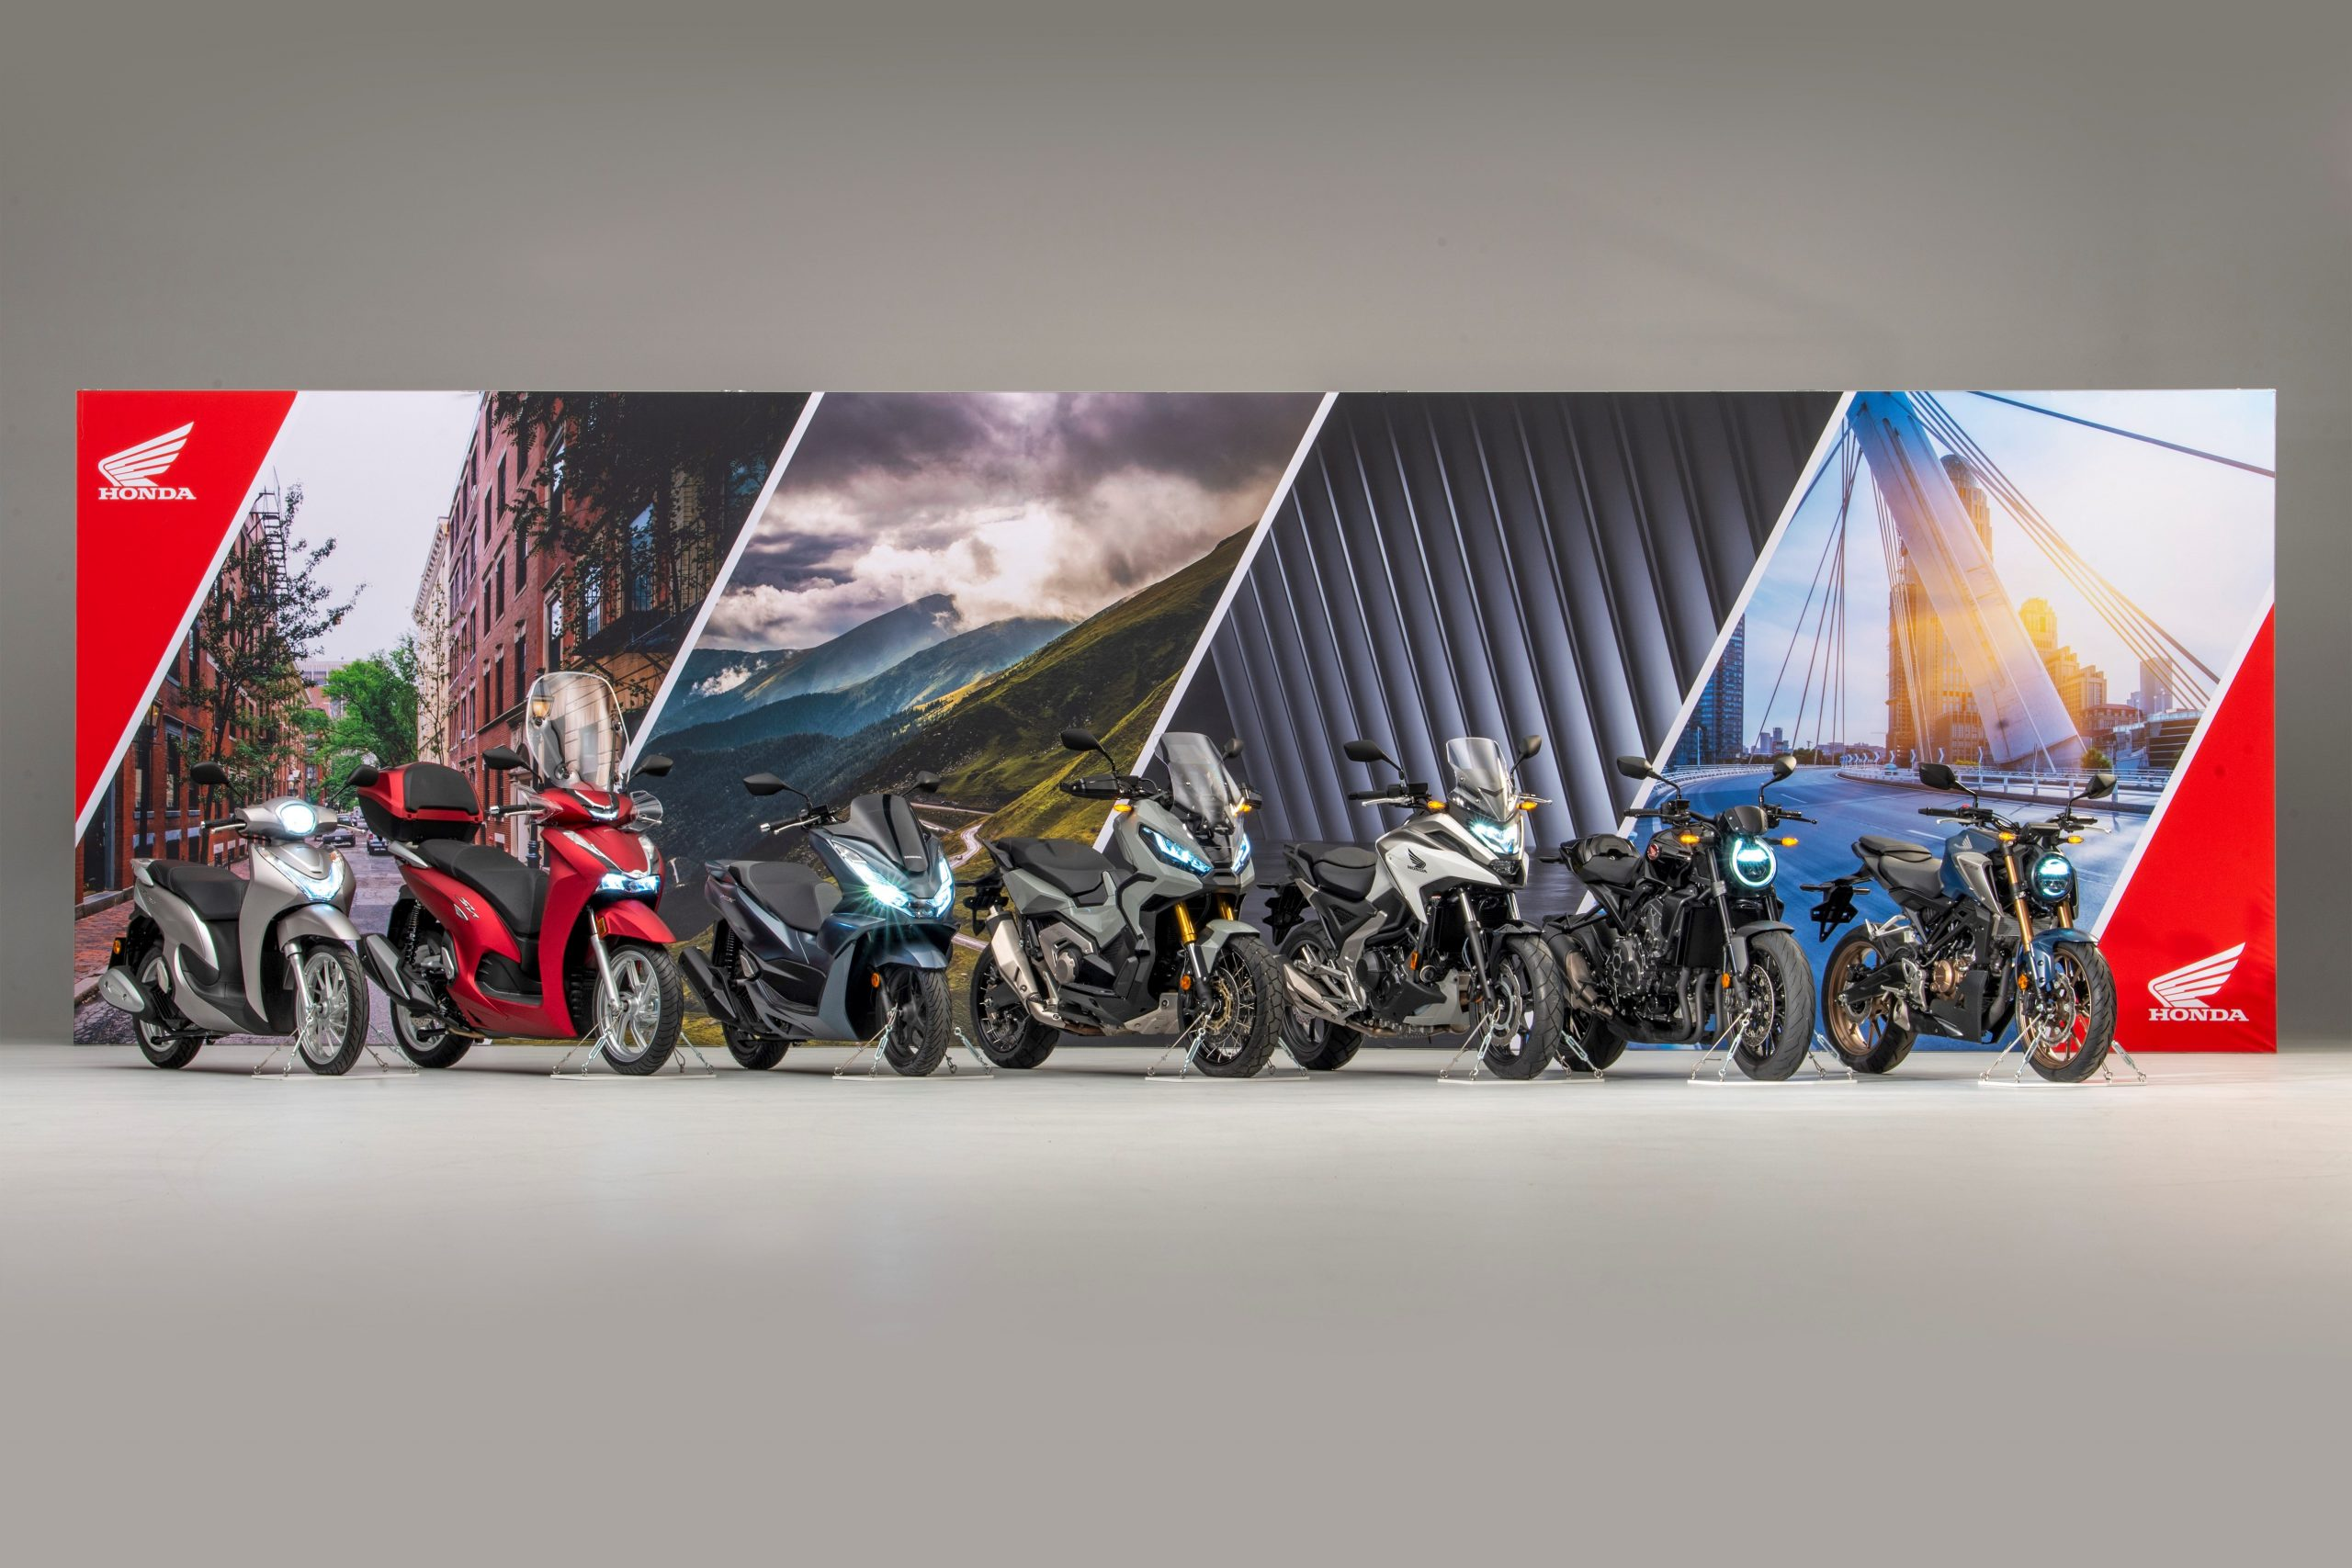 313696 Honda Announce Seven More Additions To Its Comprehensive 2021 European Scaled